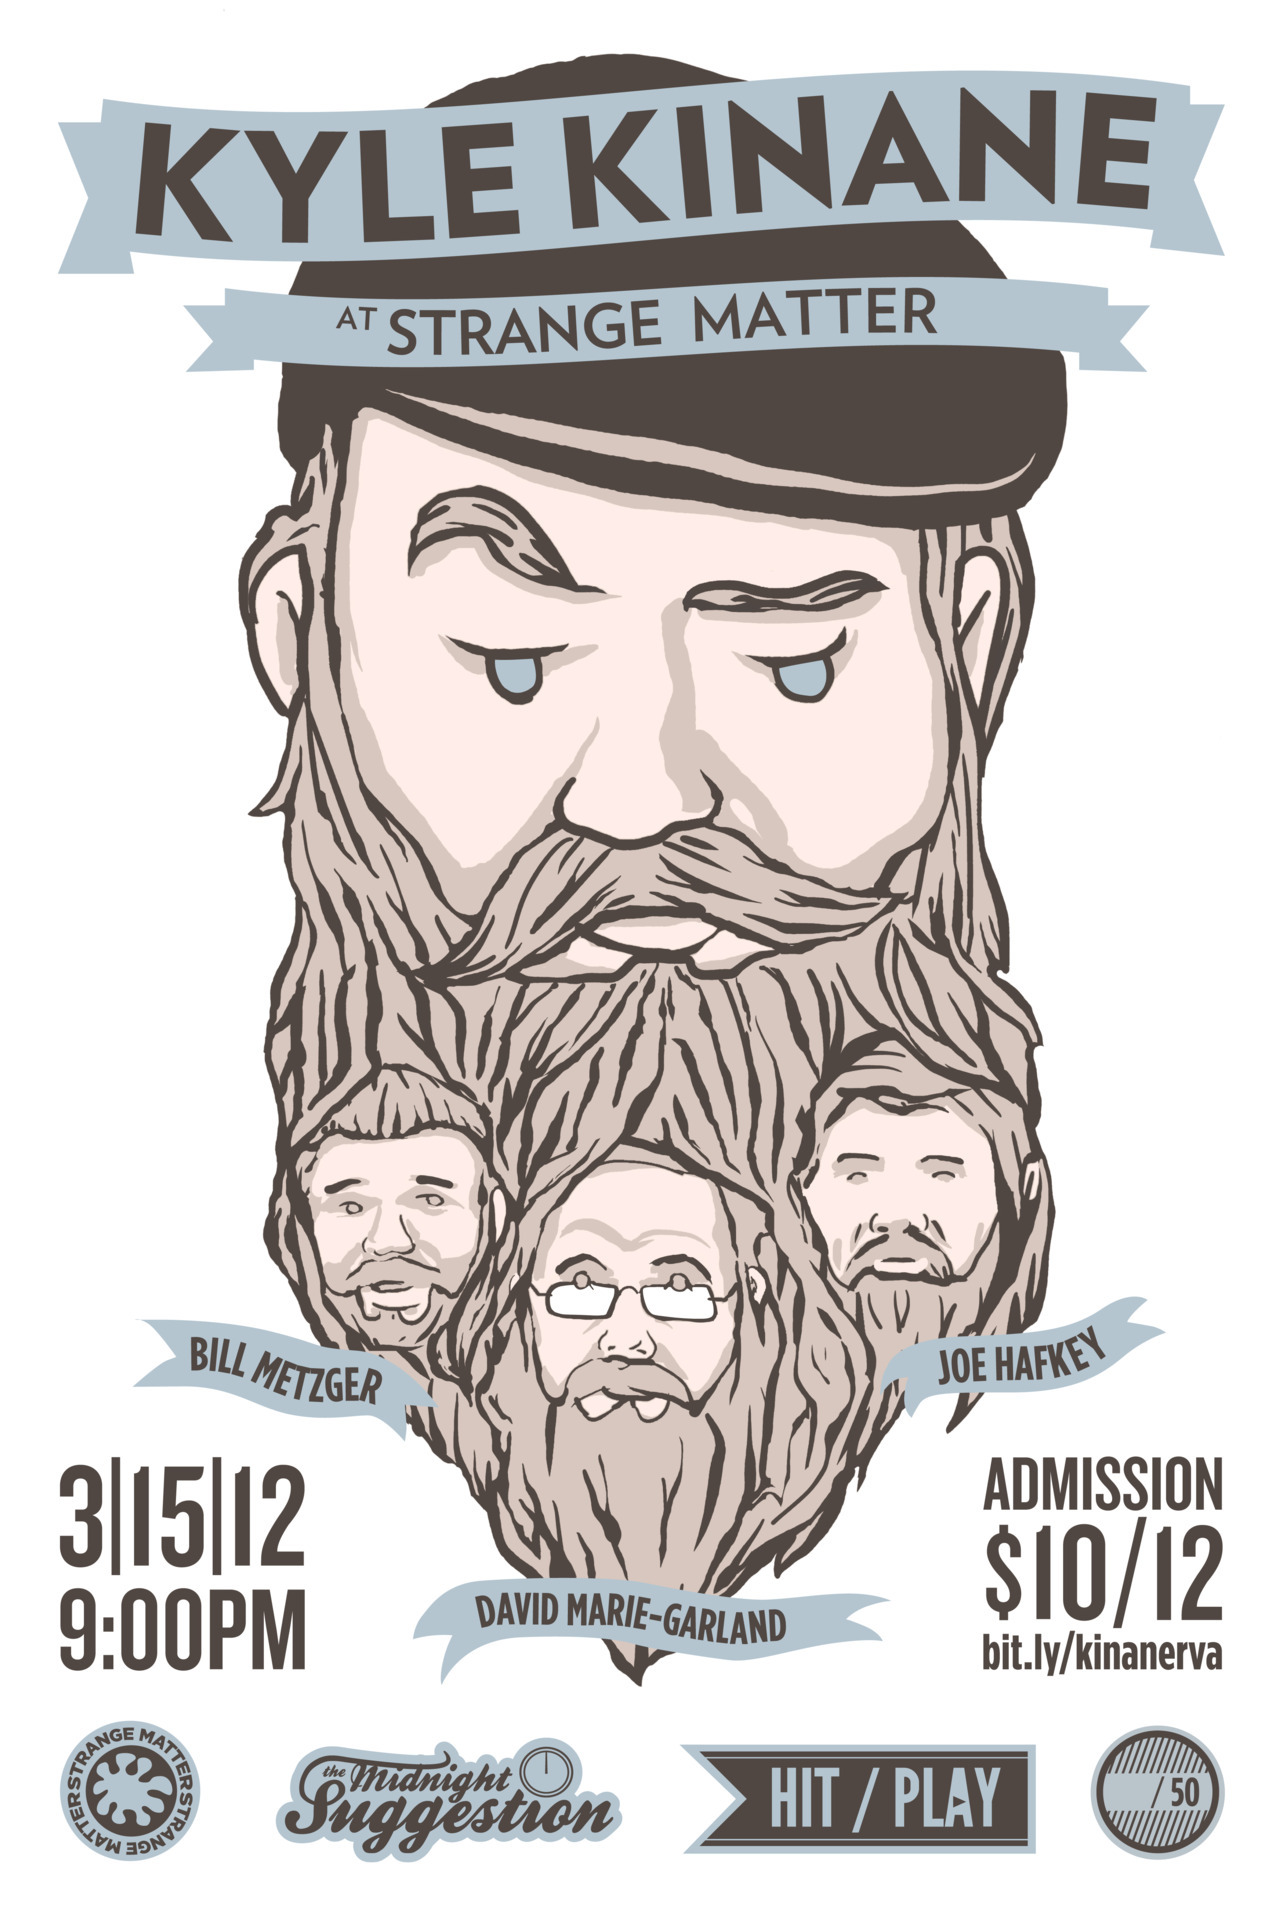 Booked & Promoted Kyle Kinane - Richmond, VA - 3/15/12